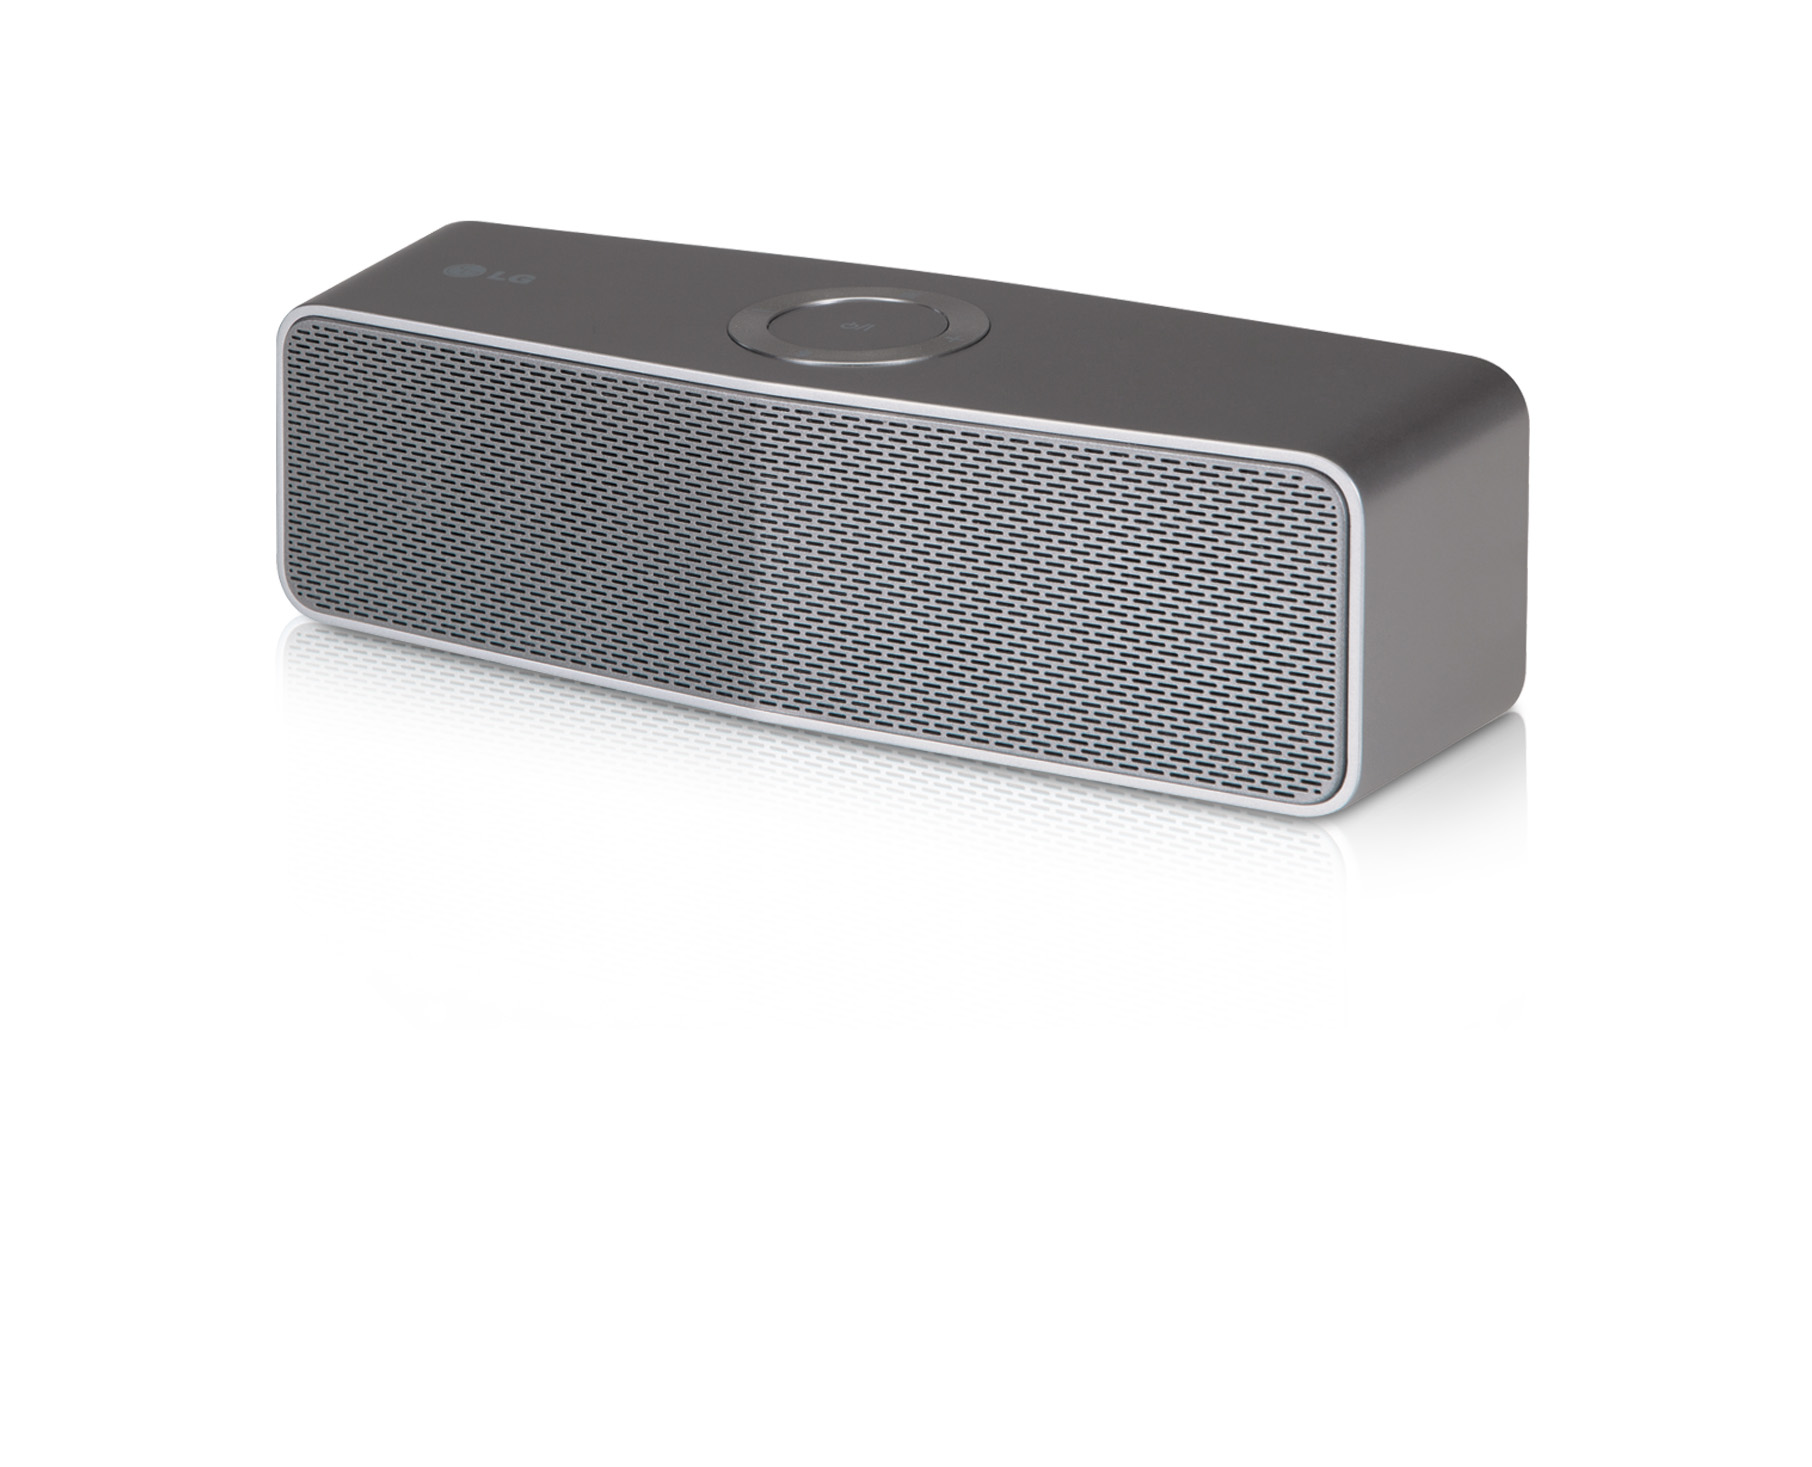 A right-side view of LG battery-powered Wi-Fi Speaker model H4 Portable